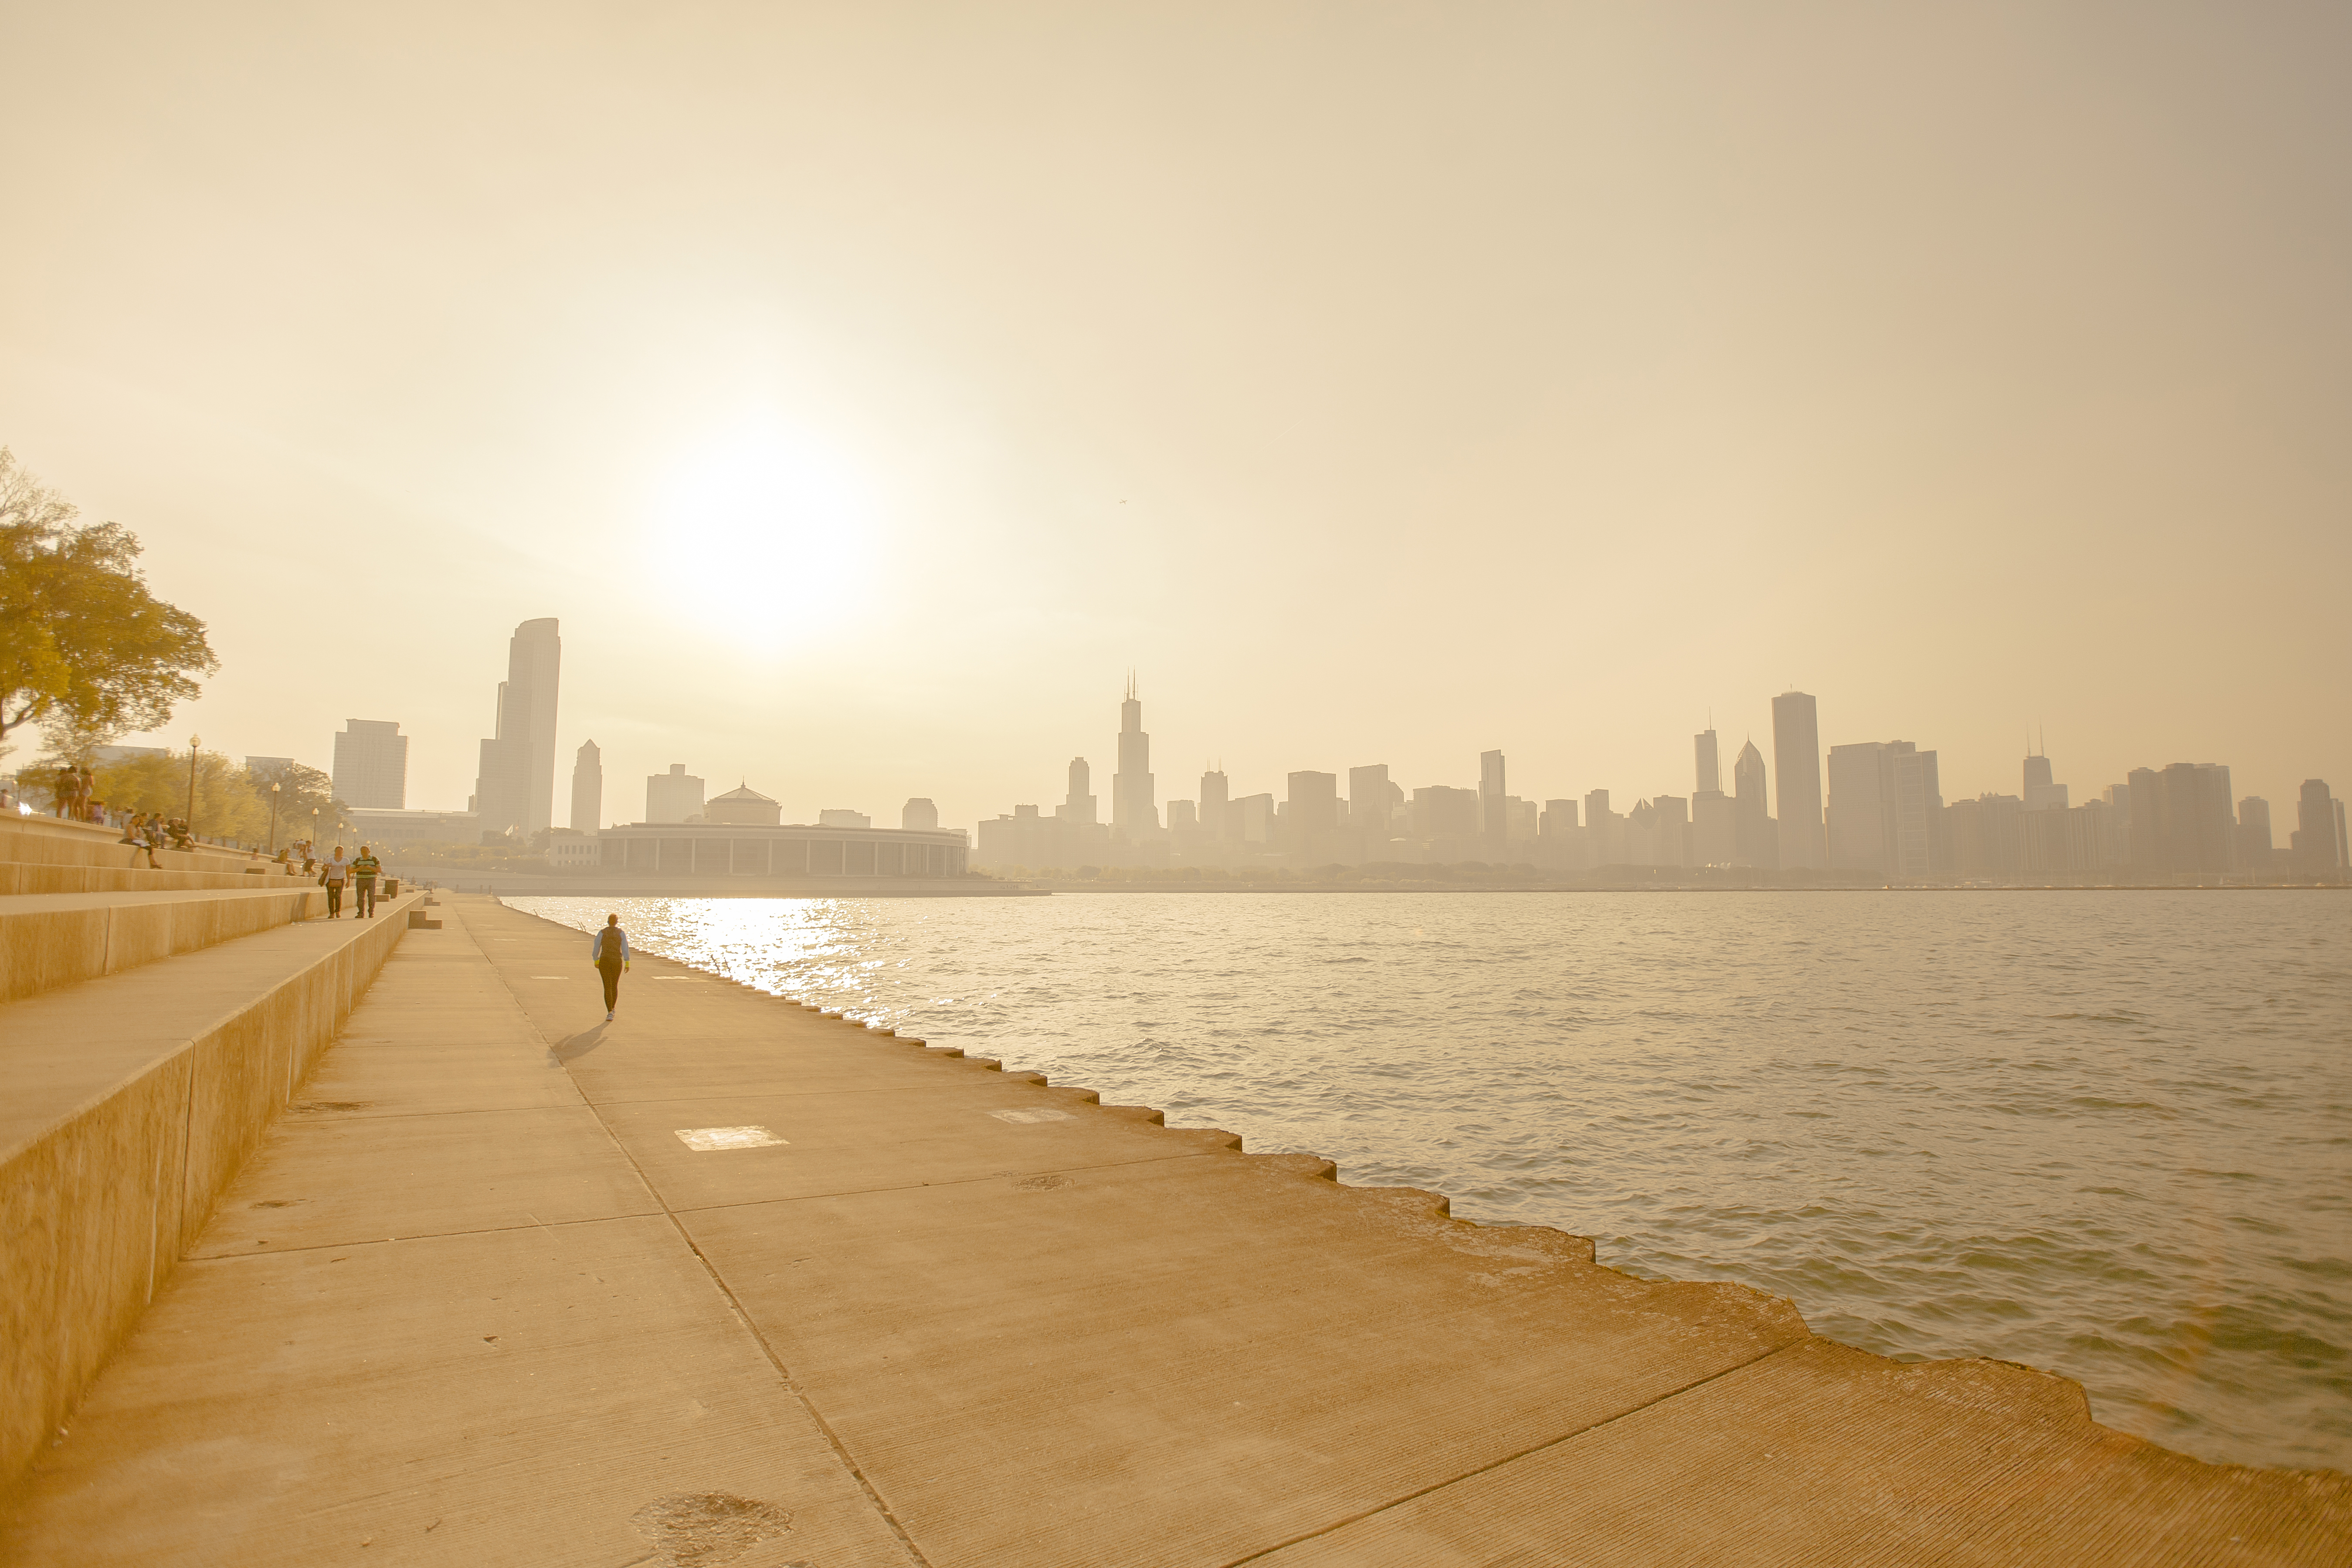 People walk along the lake near Chicago on a hot summer day under a bright sun.